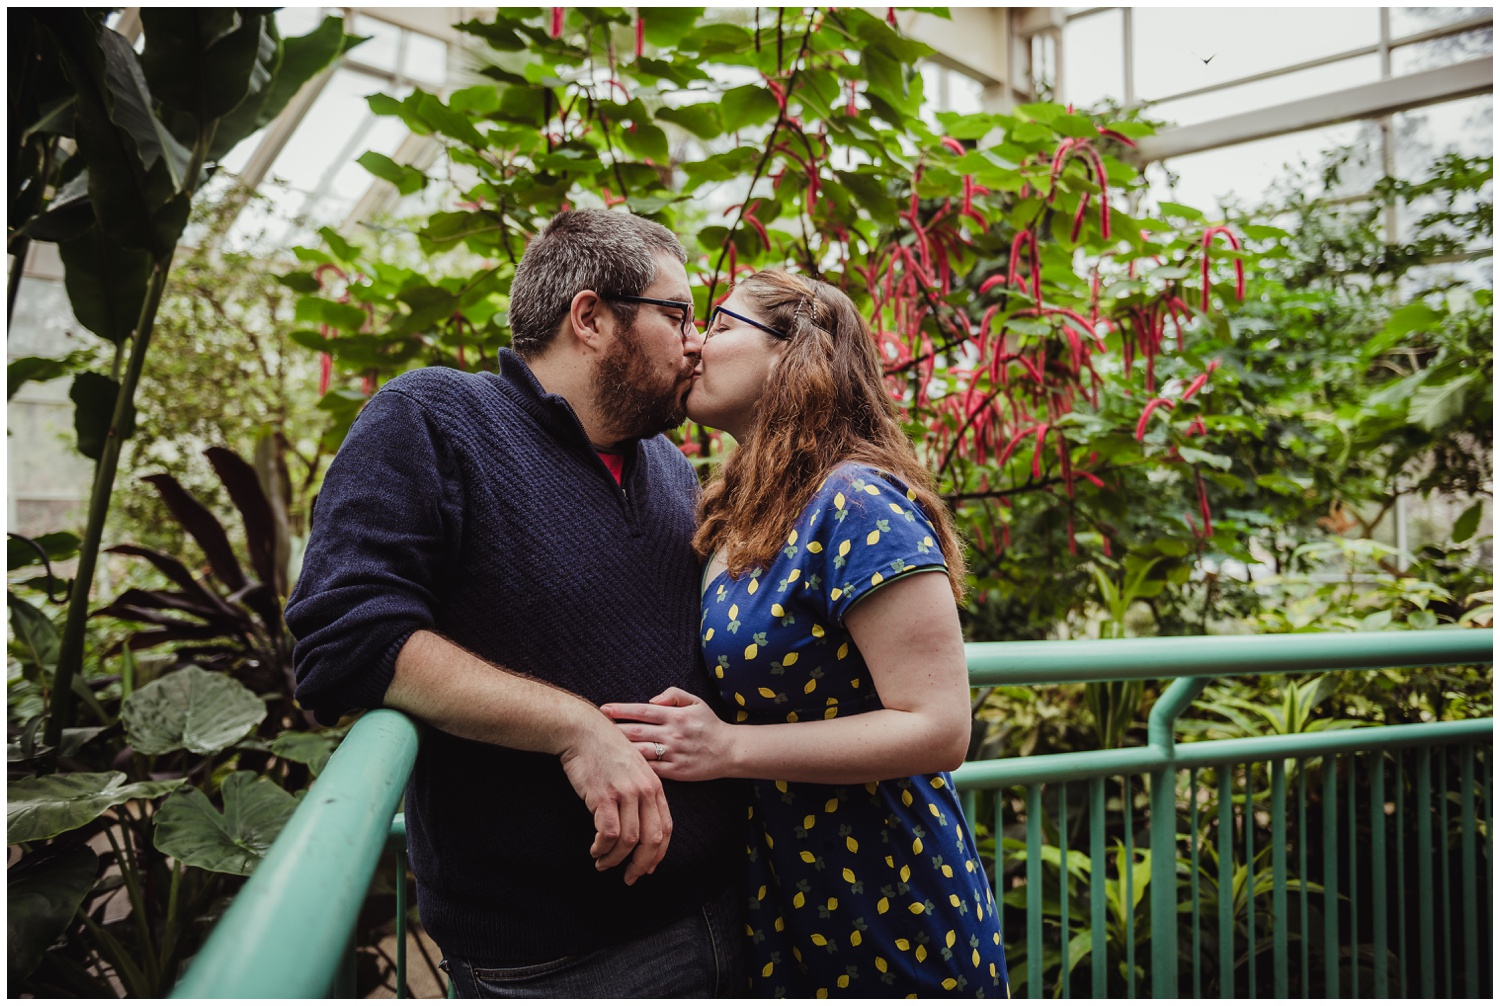 The couple steal a kiss in the Butterfly House during their engagement photo session with Rose Trail Images in Durham, NC.